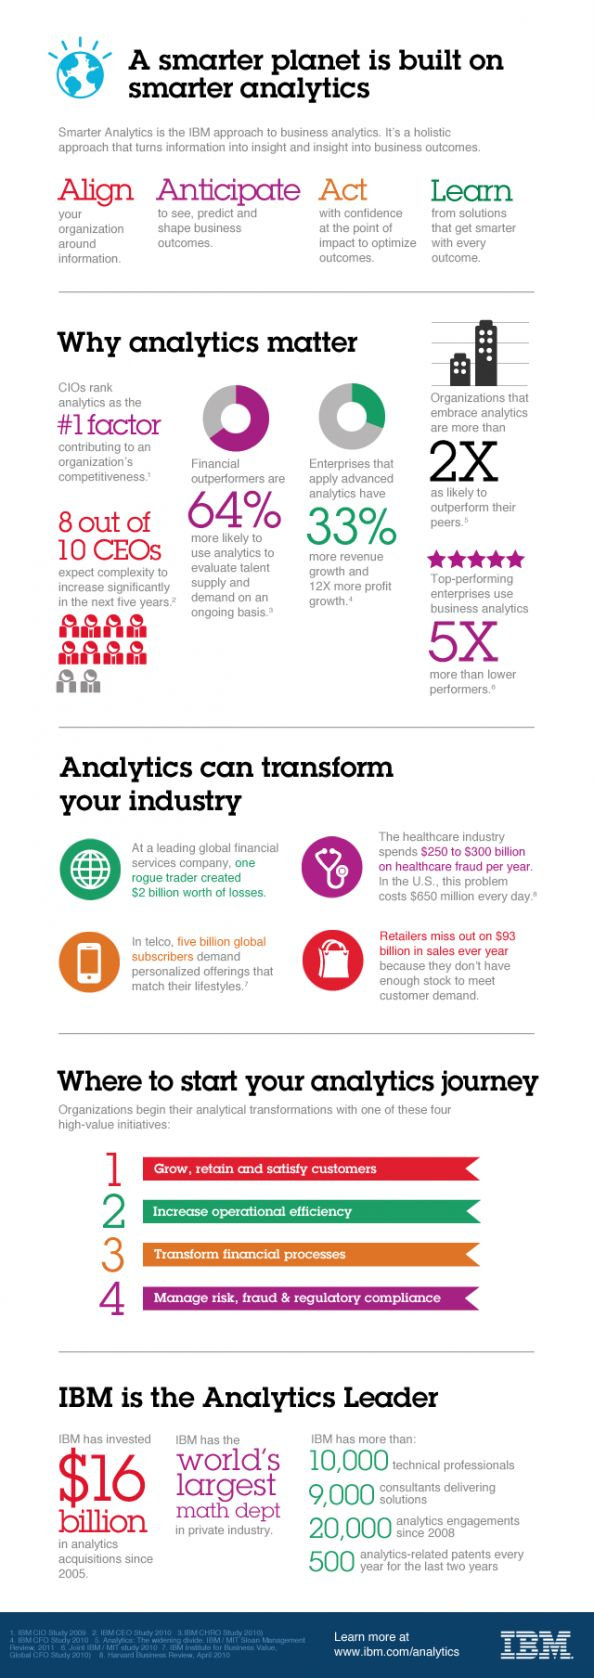 """An infographic done by IMB on """"A smarter planet is built on smarter analytics"""". The infographic displays the IBM approach to business #Analytics. The holistic approach turns information into insight and insight into business outcomes. IBM answers the questions why #Analytics matter and how they can transform your industry. 9/10"""